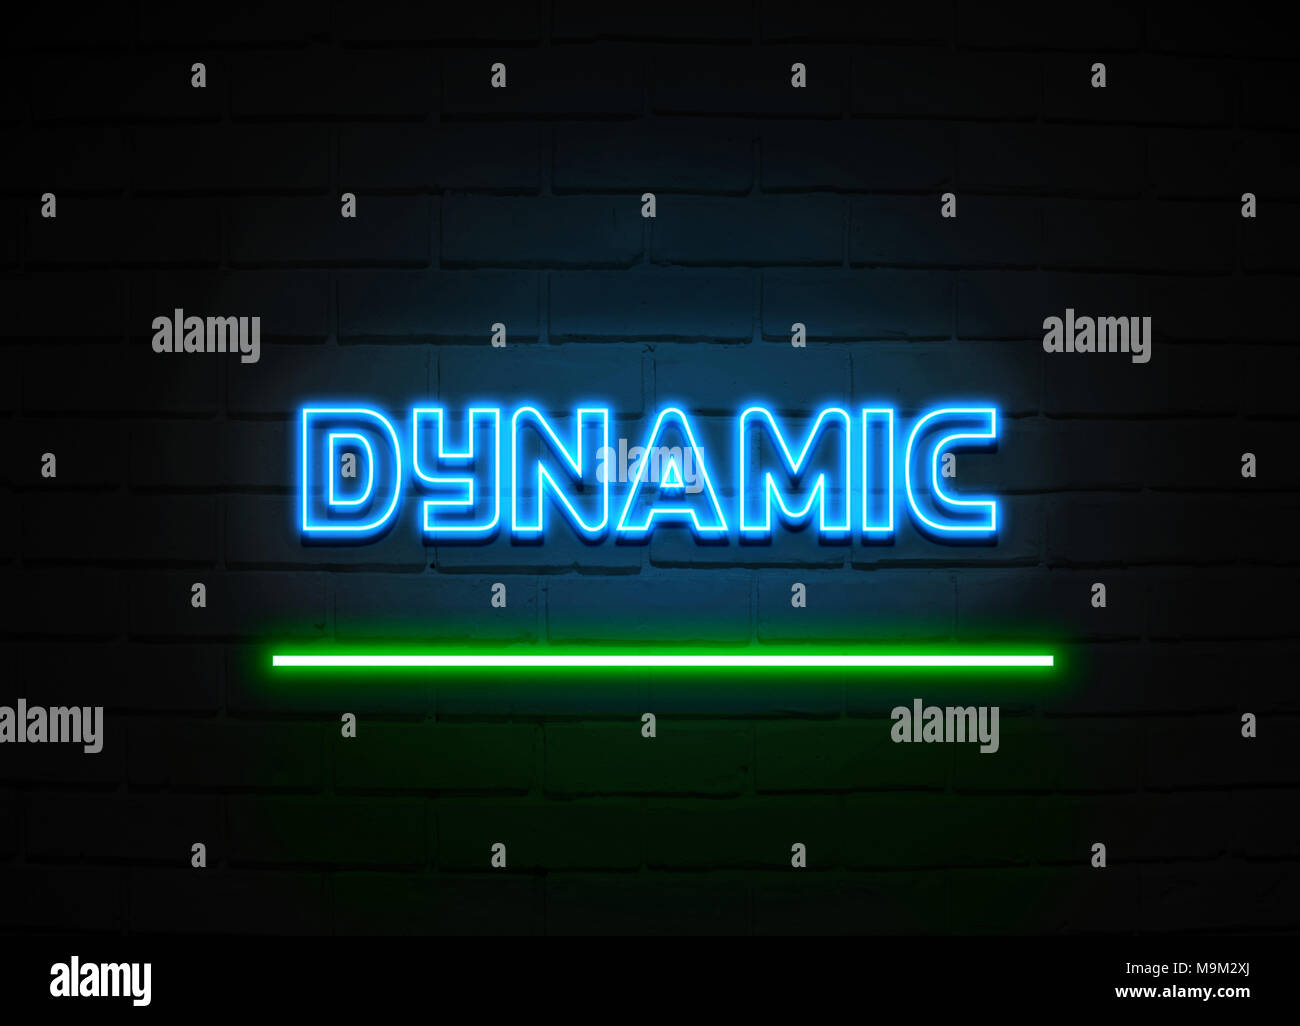 Dynamic neon sign - Glowing Neon Sign on brickwall wall - 3D rendered royalty free stock illustration. - Stock Image